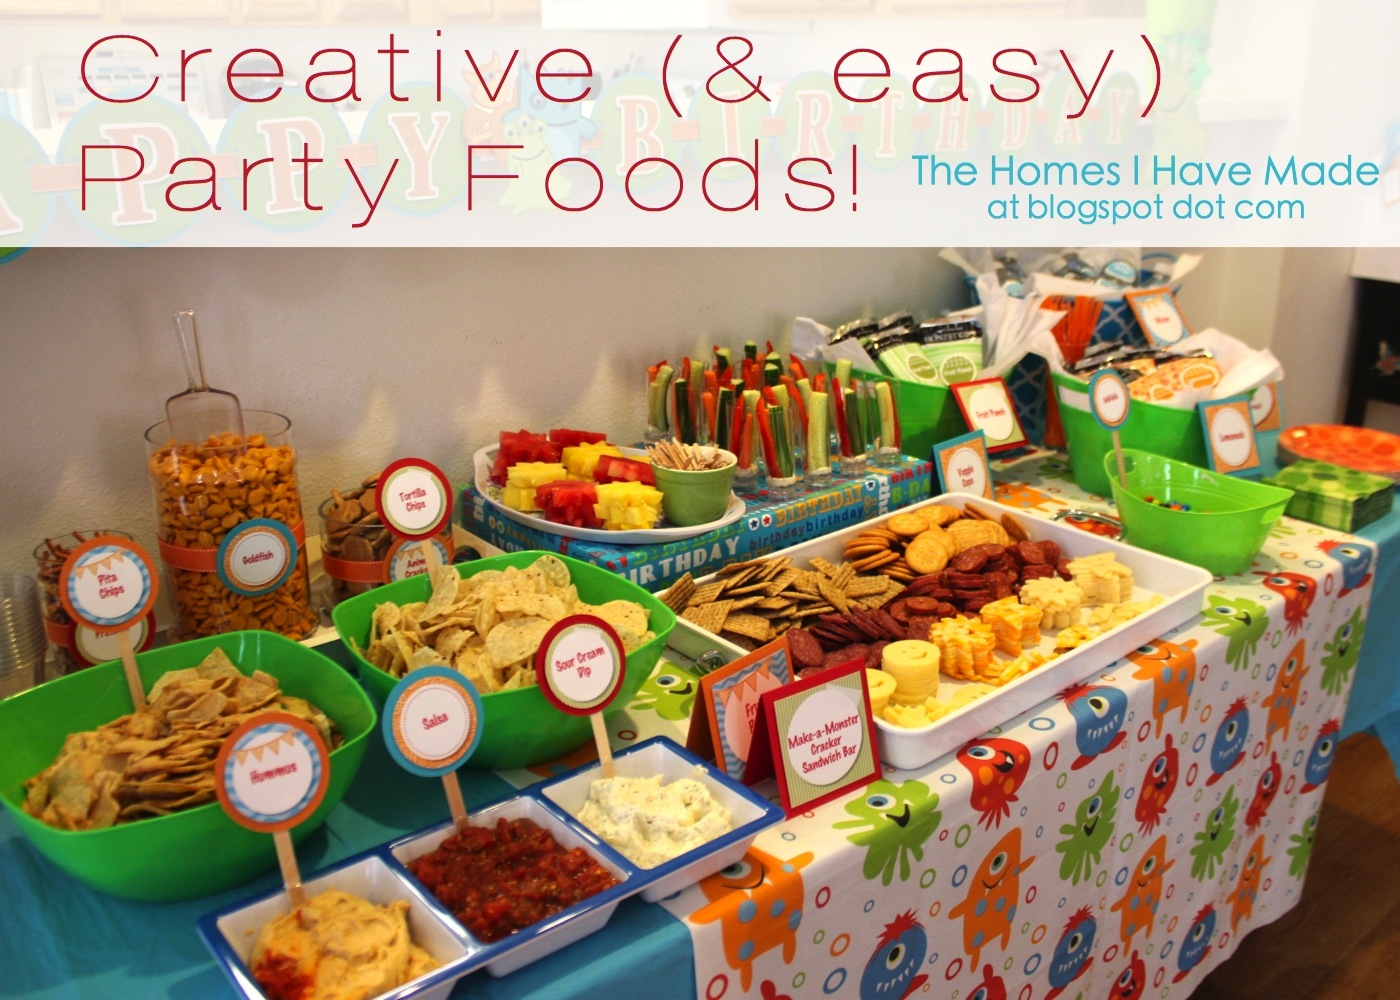 Download this Party Food picture